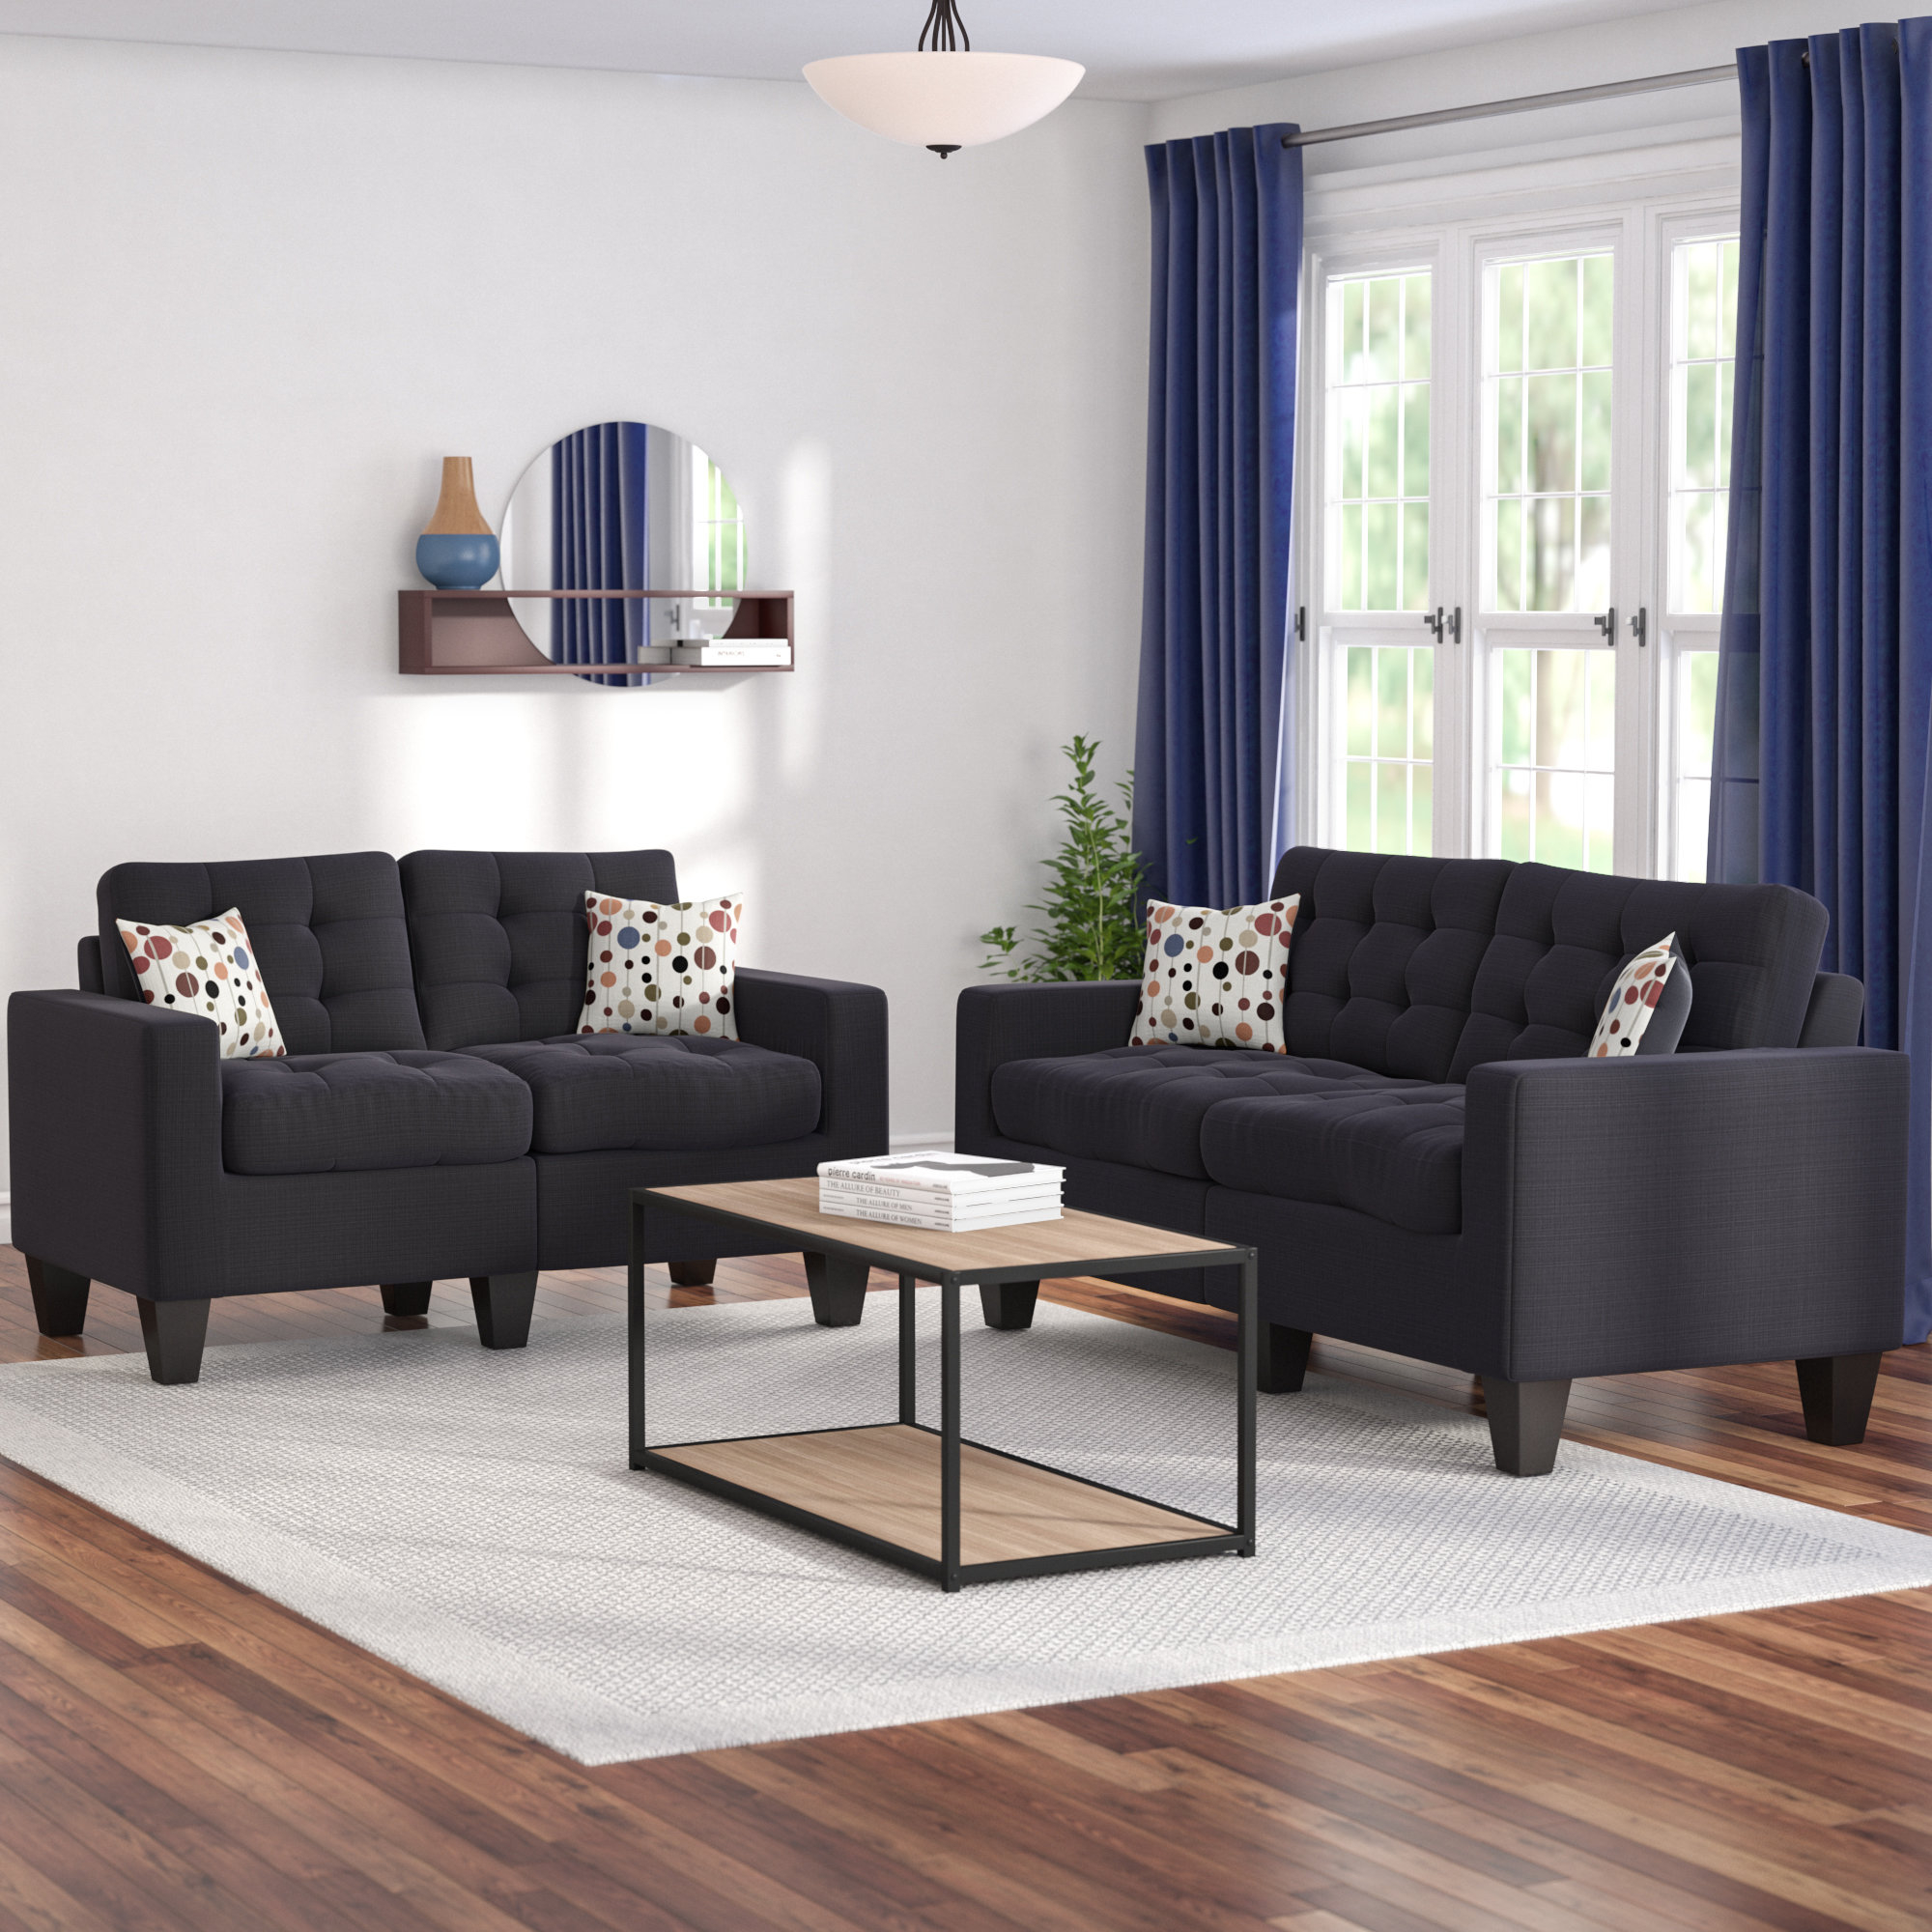 Amia 2 Piece Living Room Set within Living Room Set Cheap